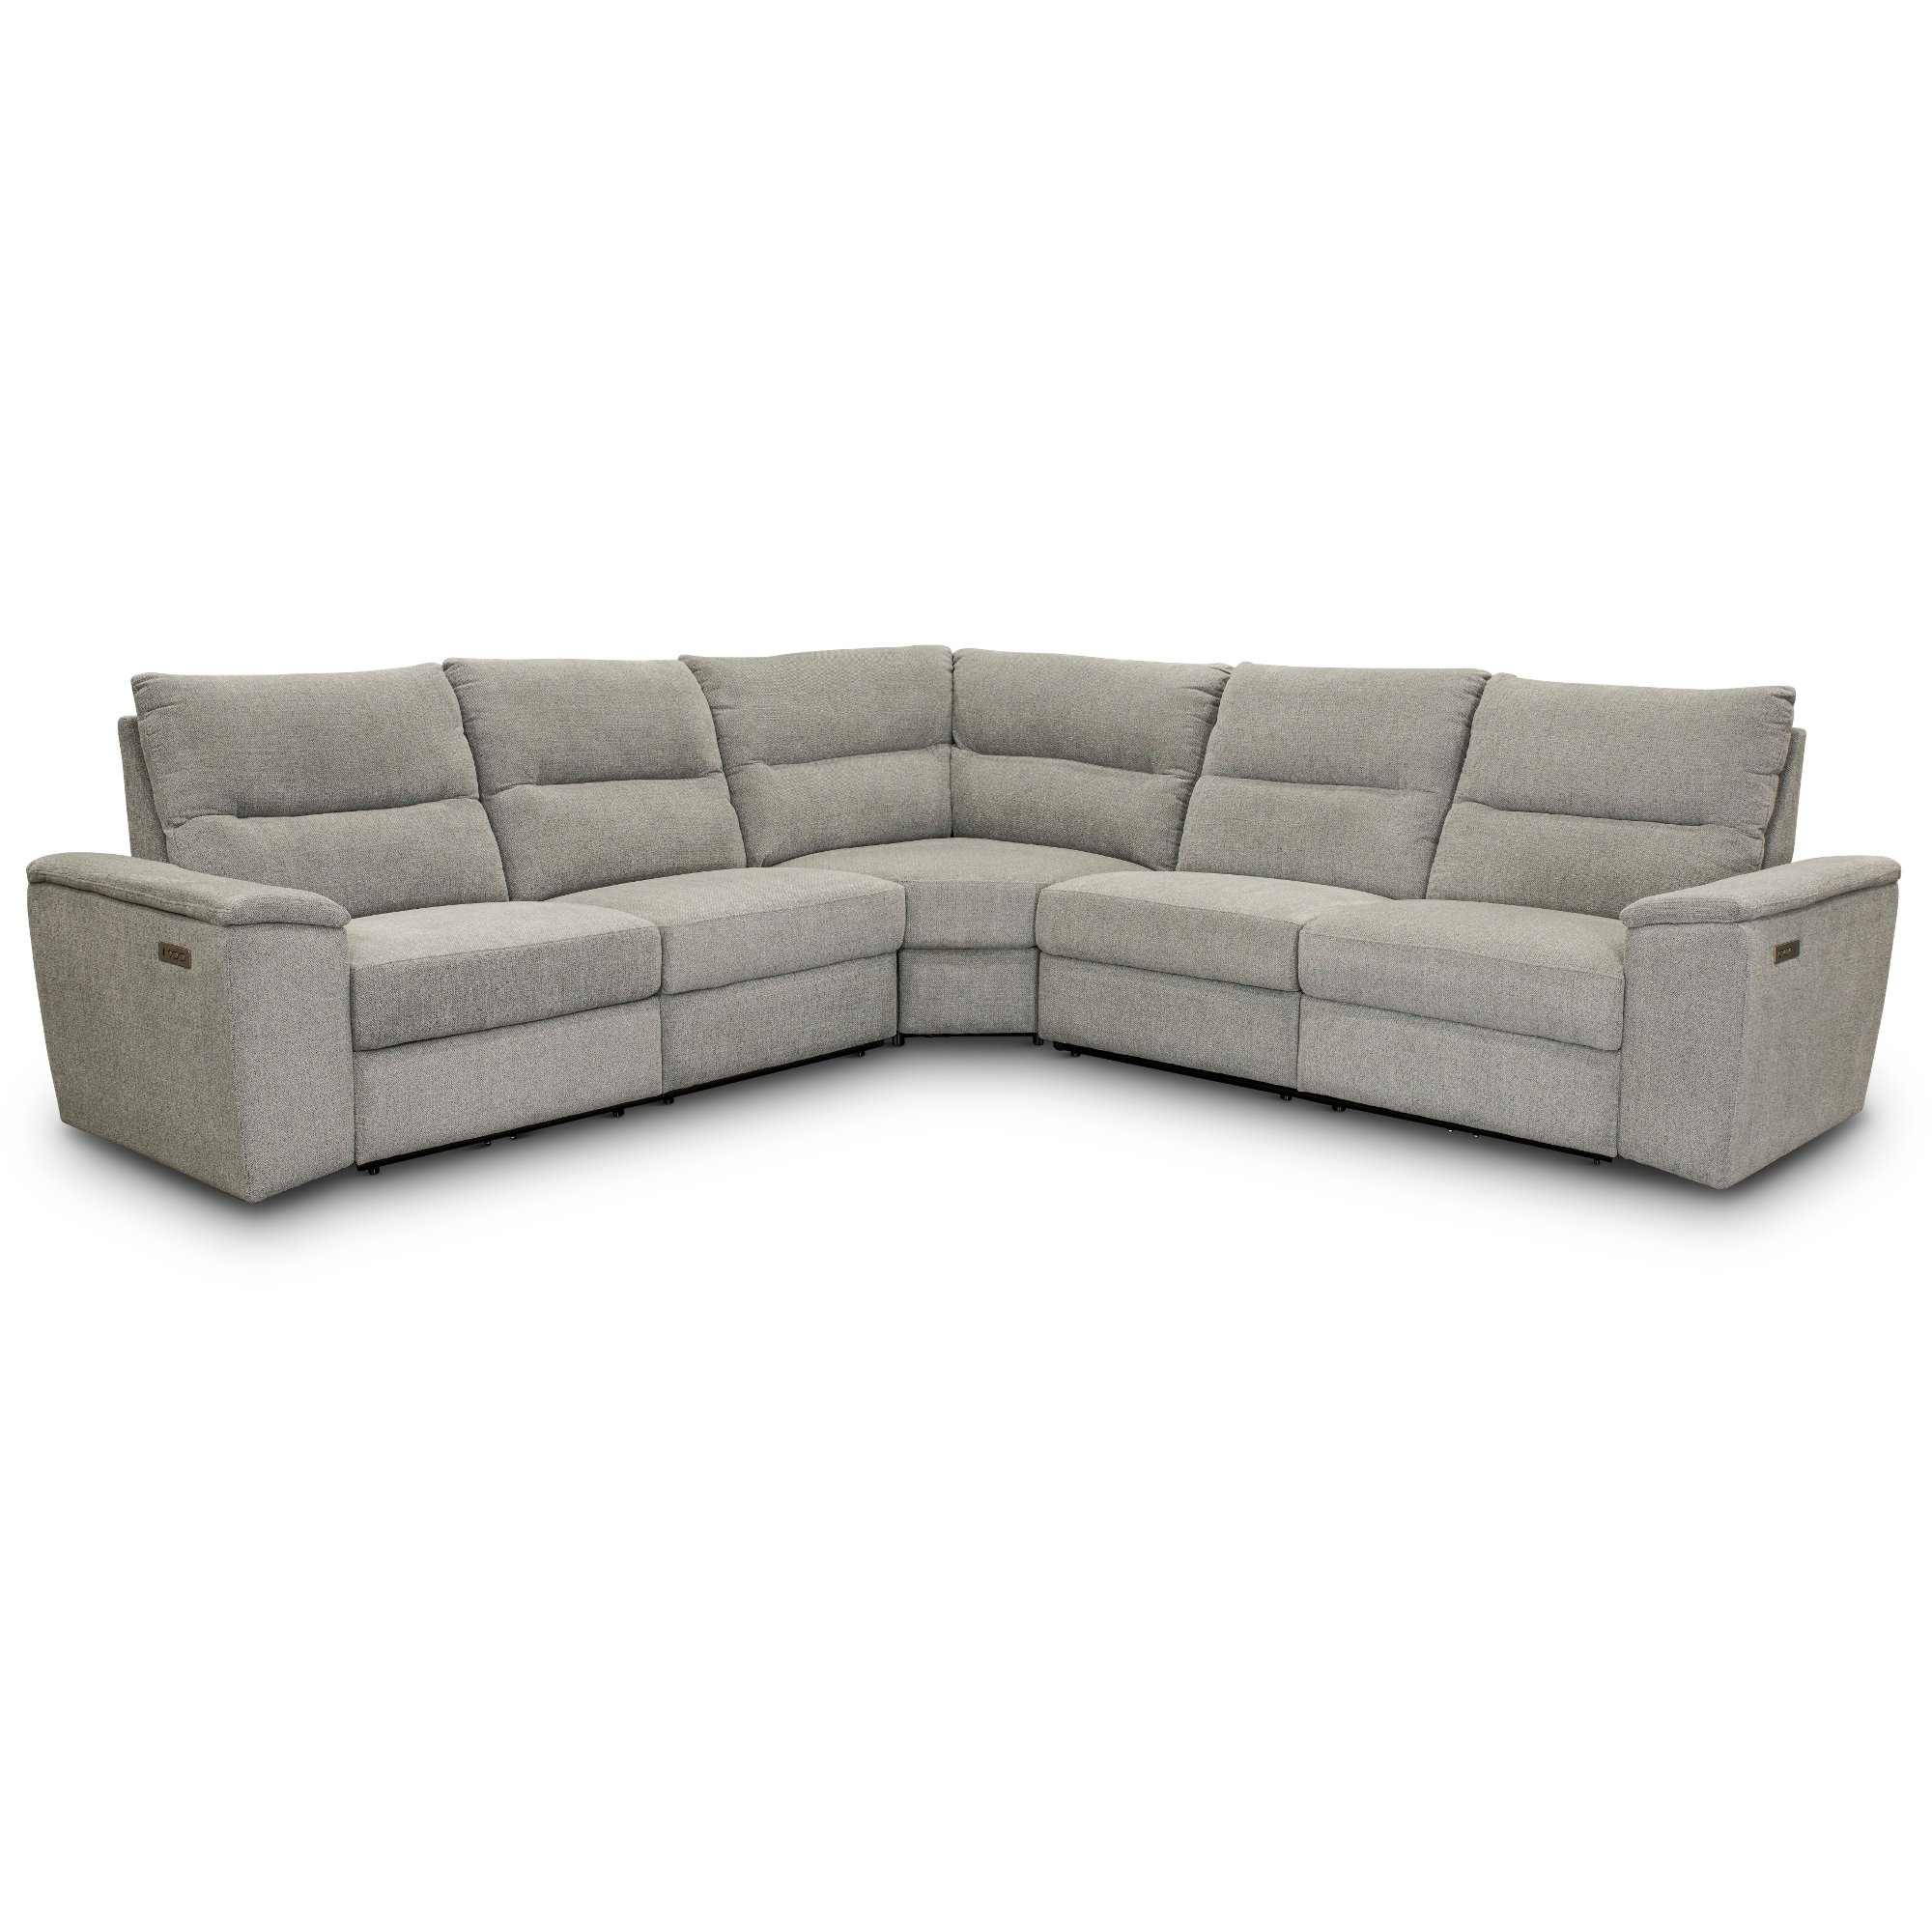 Ash 3 Piece Power Reclining Sectional Sofa Cush Rc Willey Furniture Store